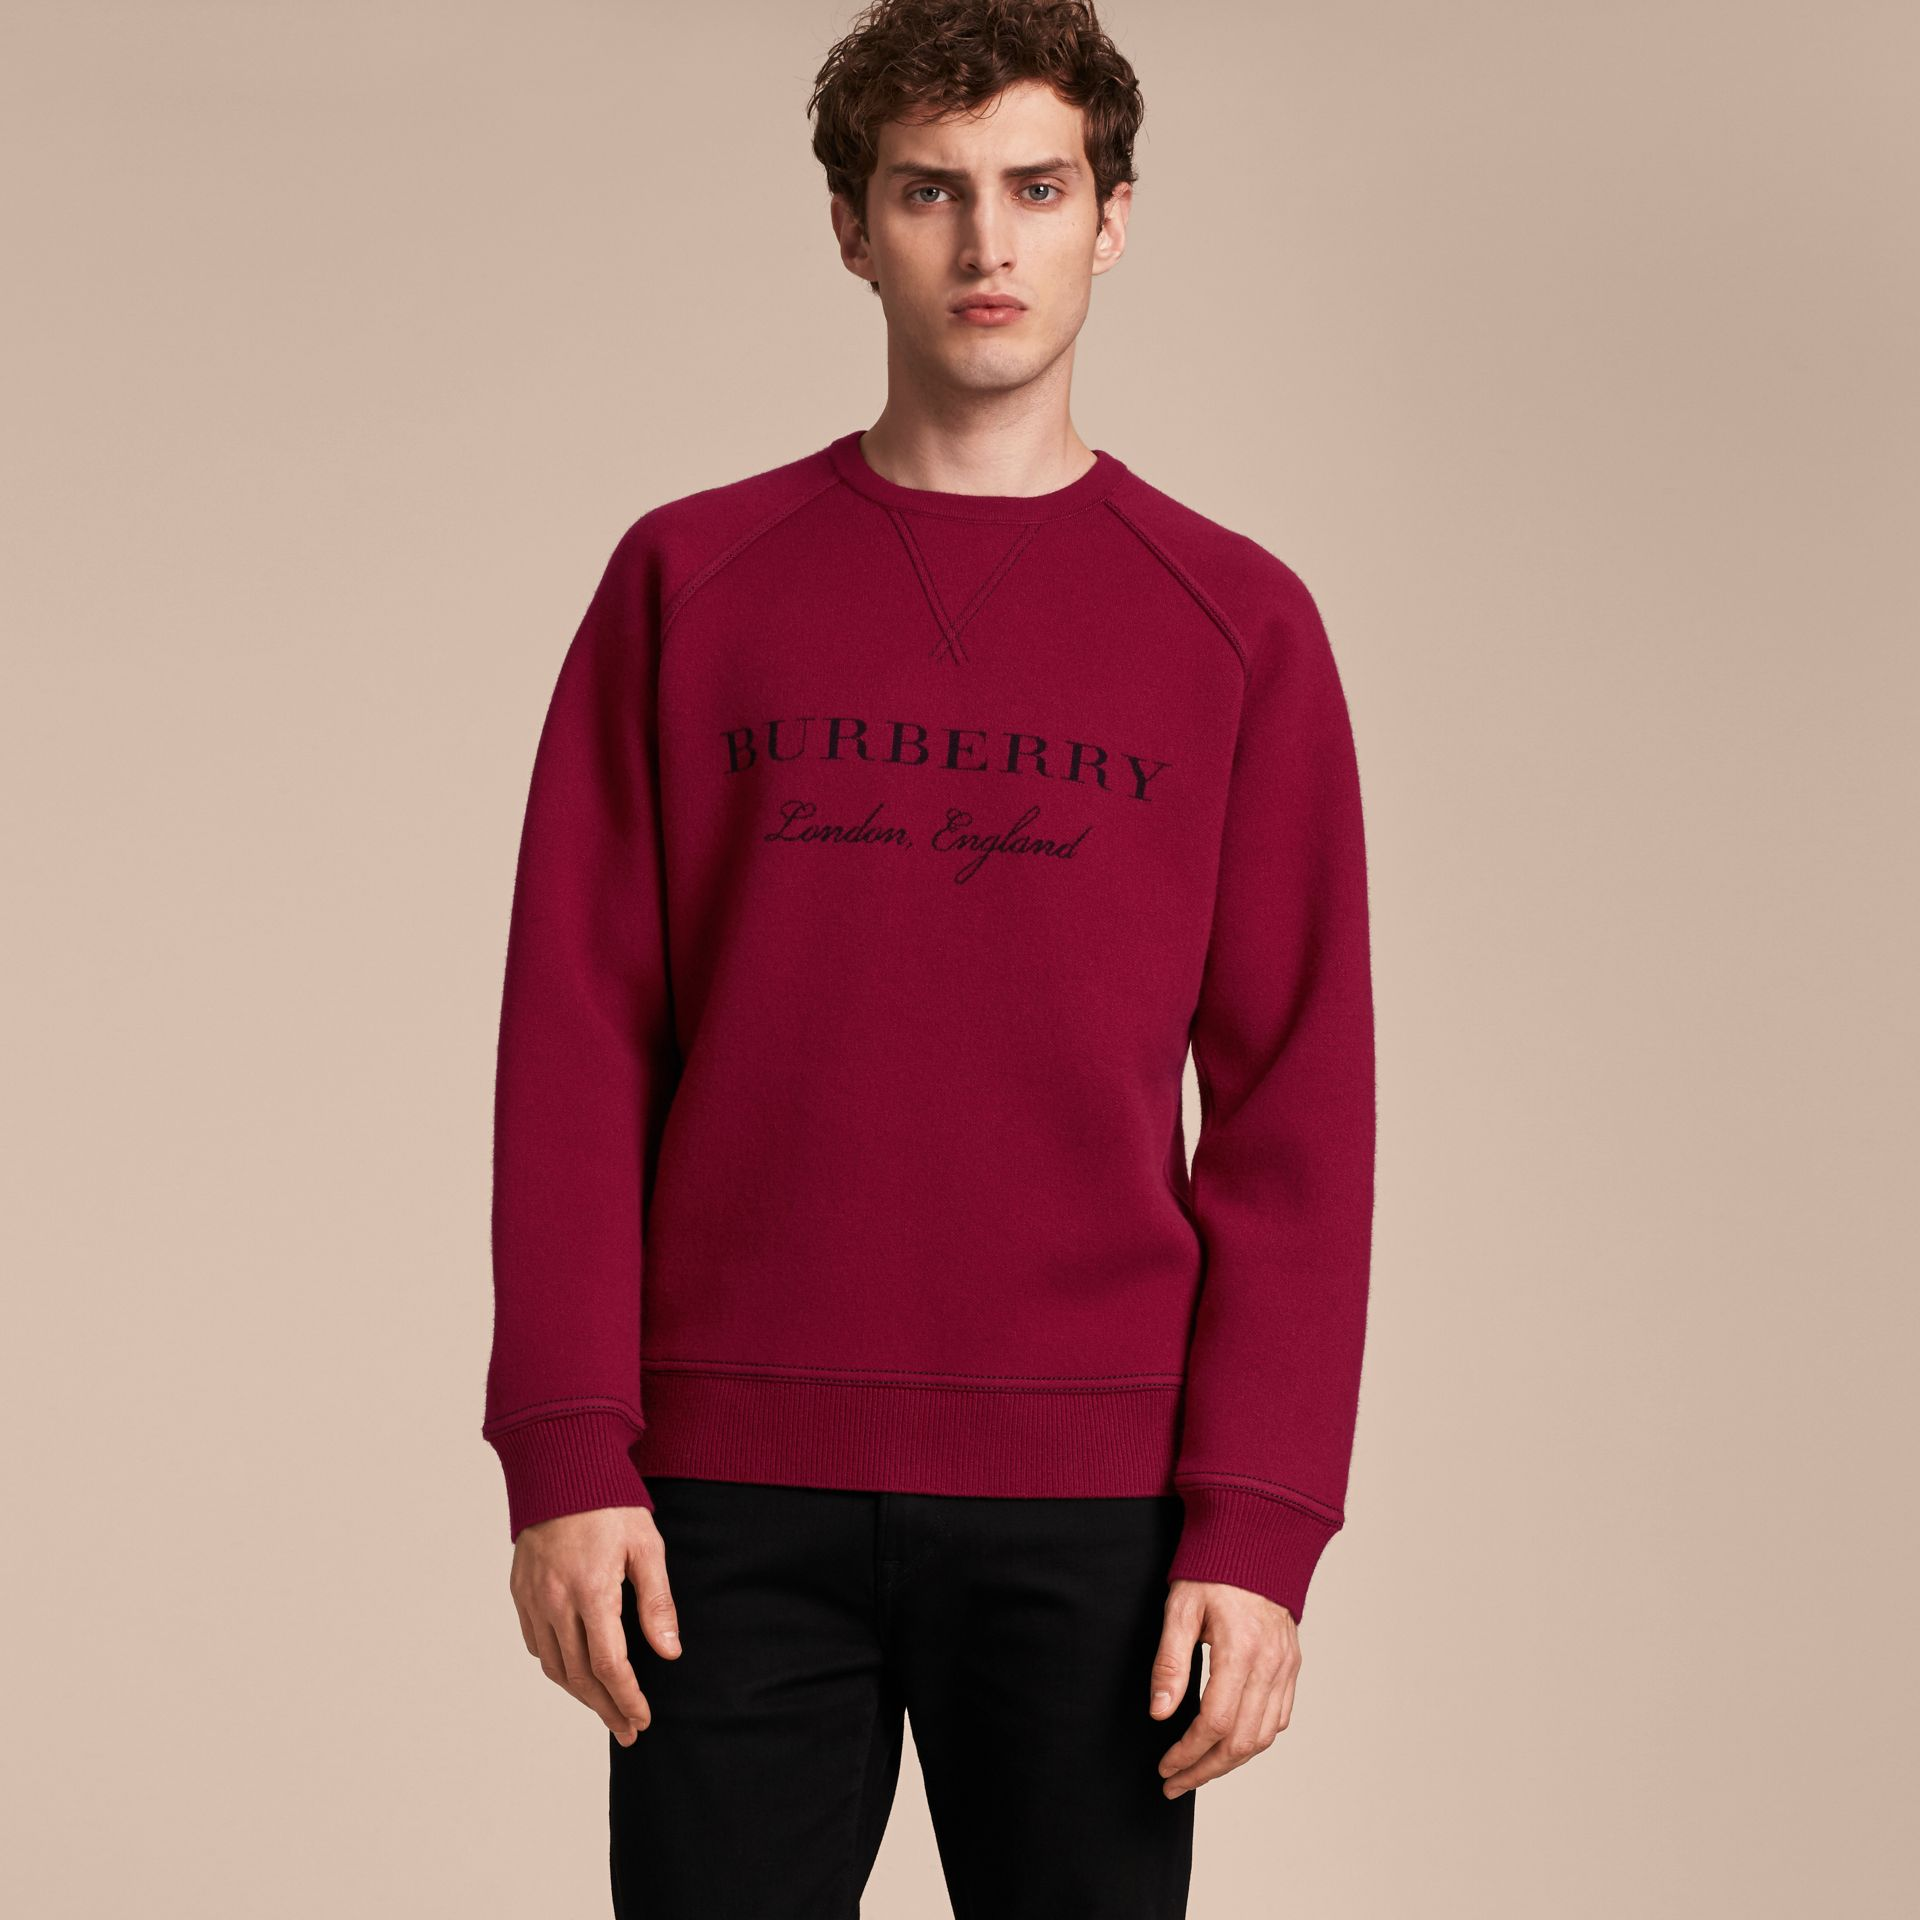 Topstitch Detail Wool Cashmere Blend Sweatshirt in Burgundy - Men | Burberry - gallery image 6